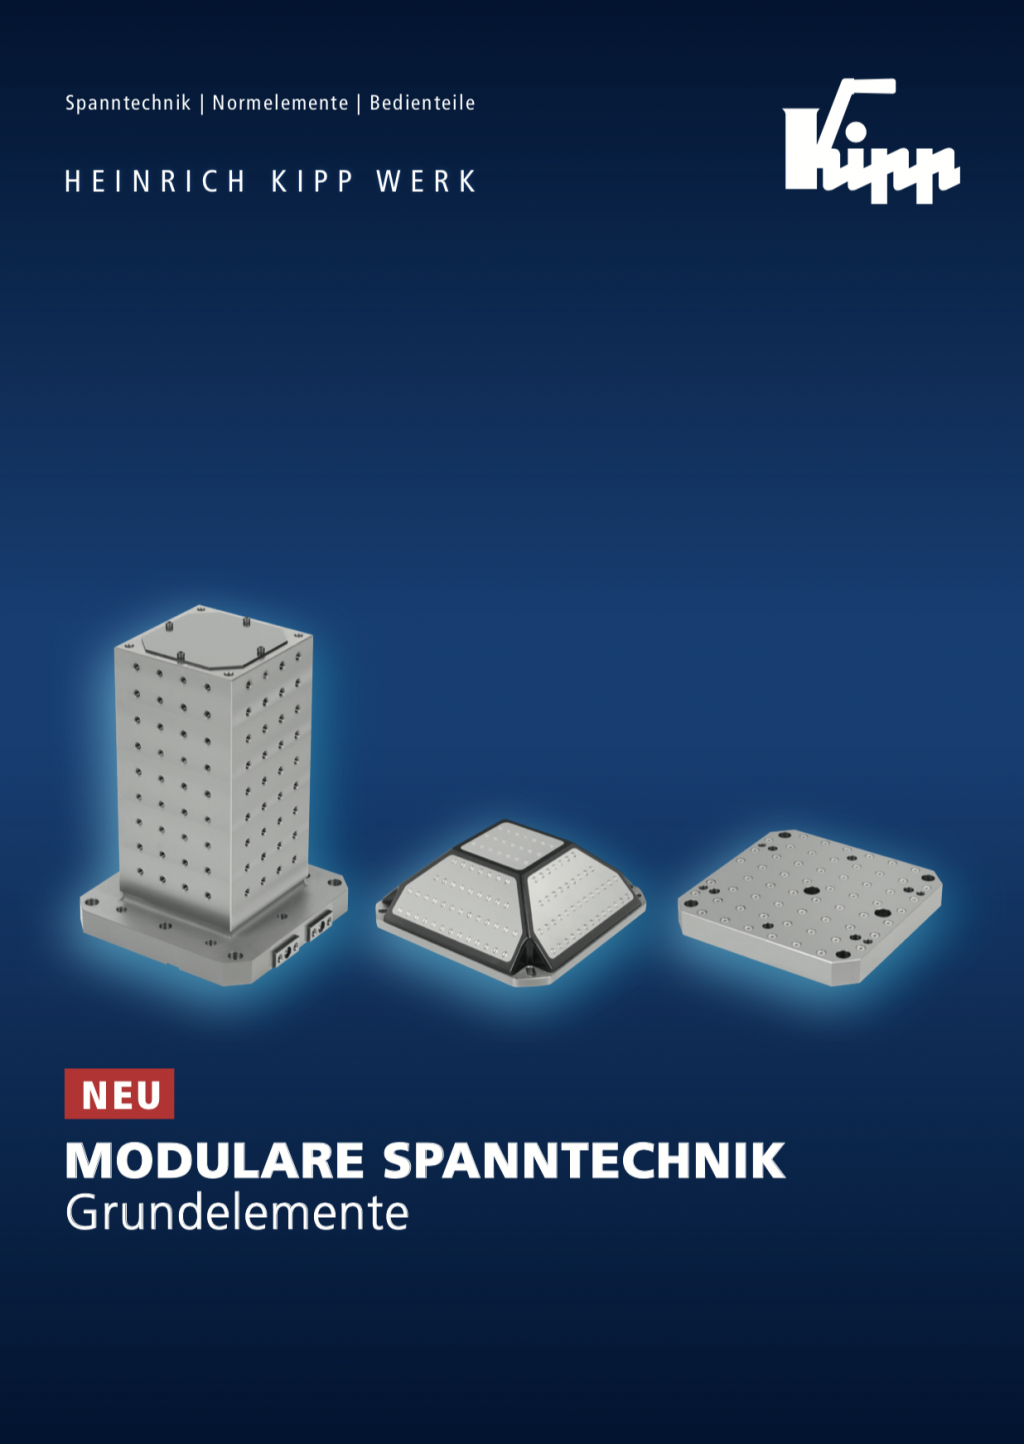 image-10842434-Modulare_Spanntechnik-9bf31.w640.png